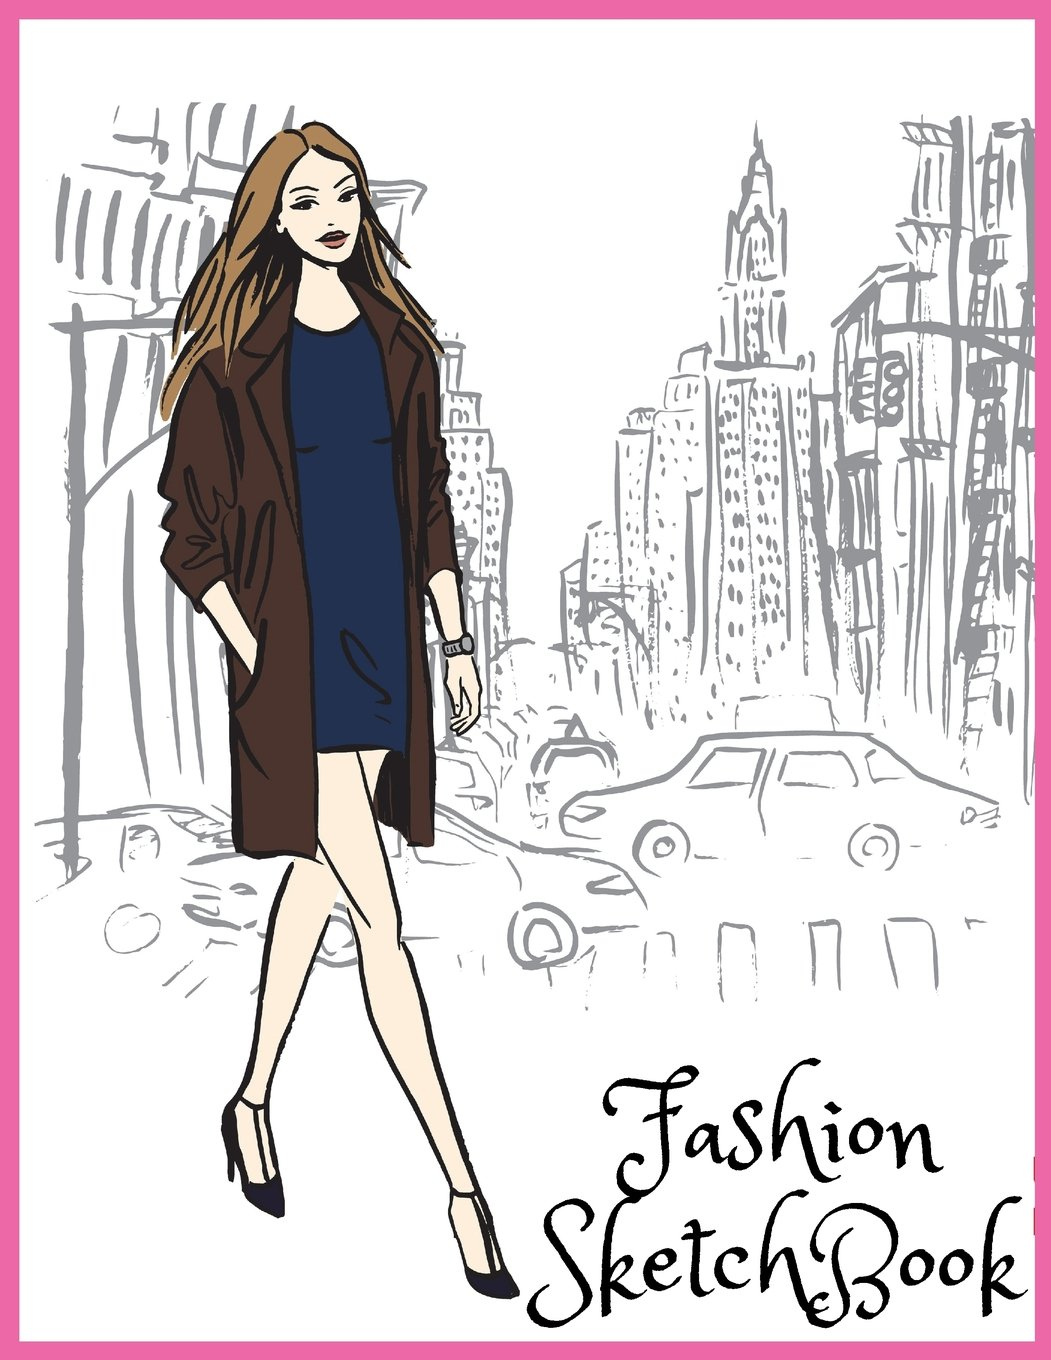 Fashion Sketchbook 310 Figure Templates With 3 Different Pose Fashion Design Volume 4 Coloring Carolyn 9781722676841 Amazon Com Books